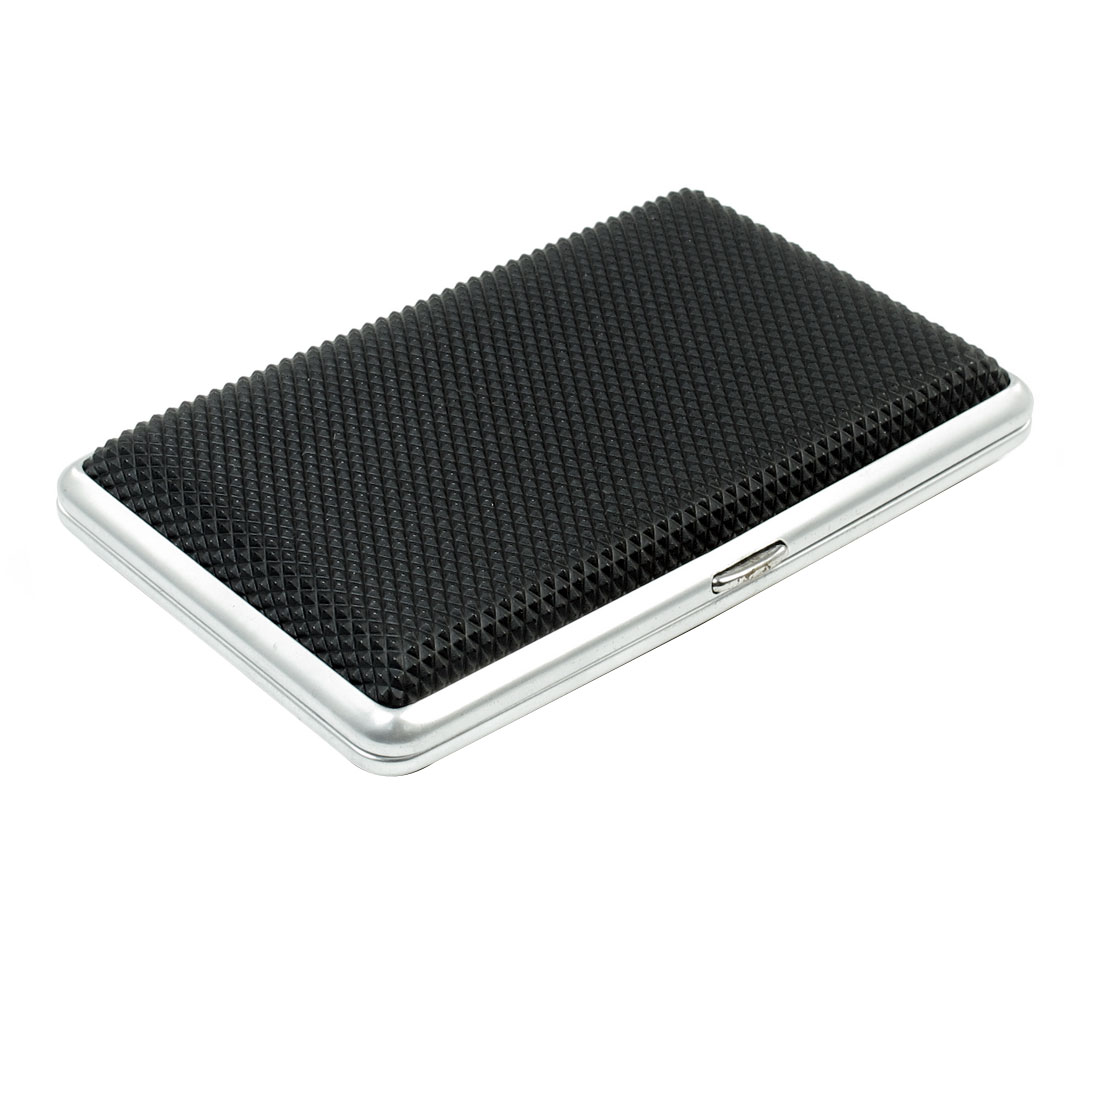 Man Rhombus Pattern Black Plastic Warpped Metal Cigarettes Tobacco Box Case